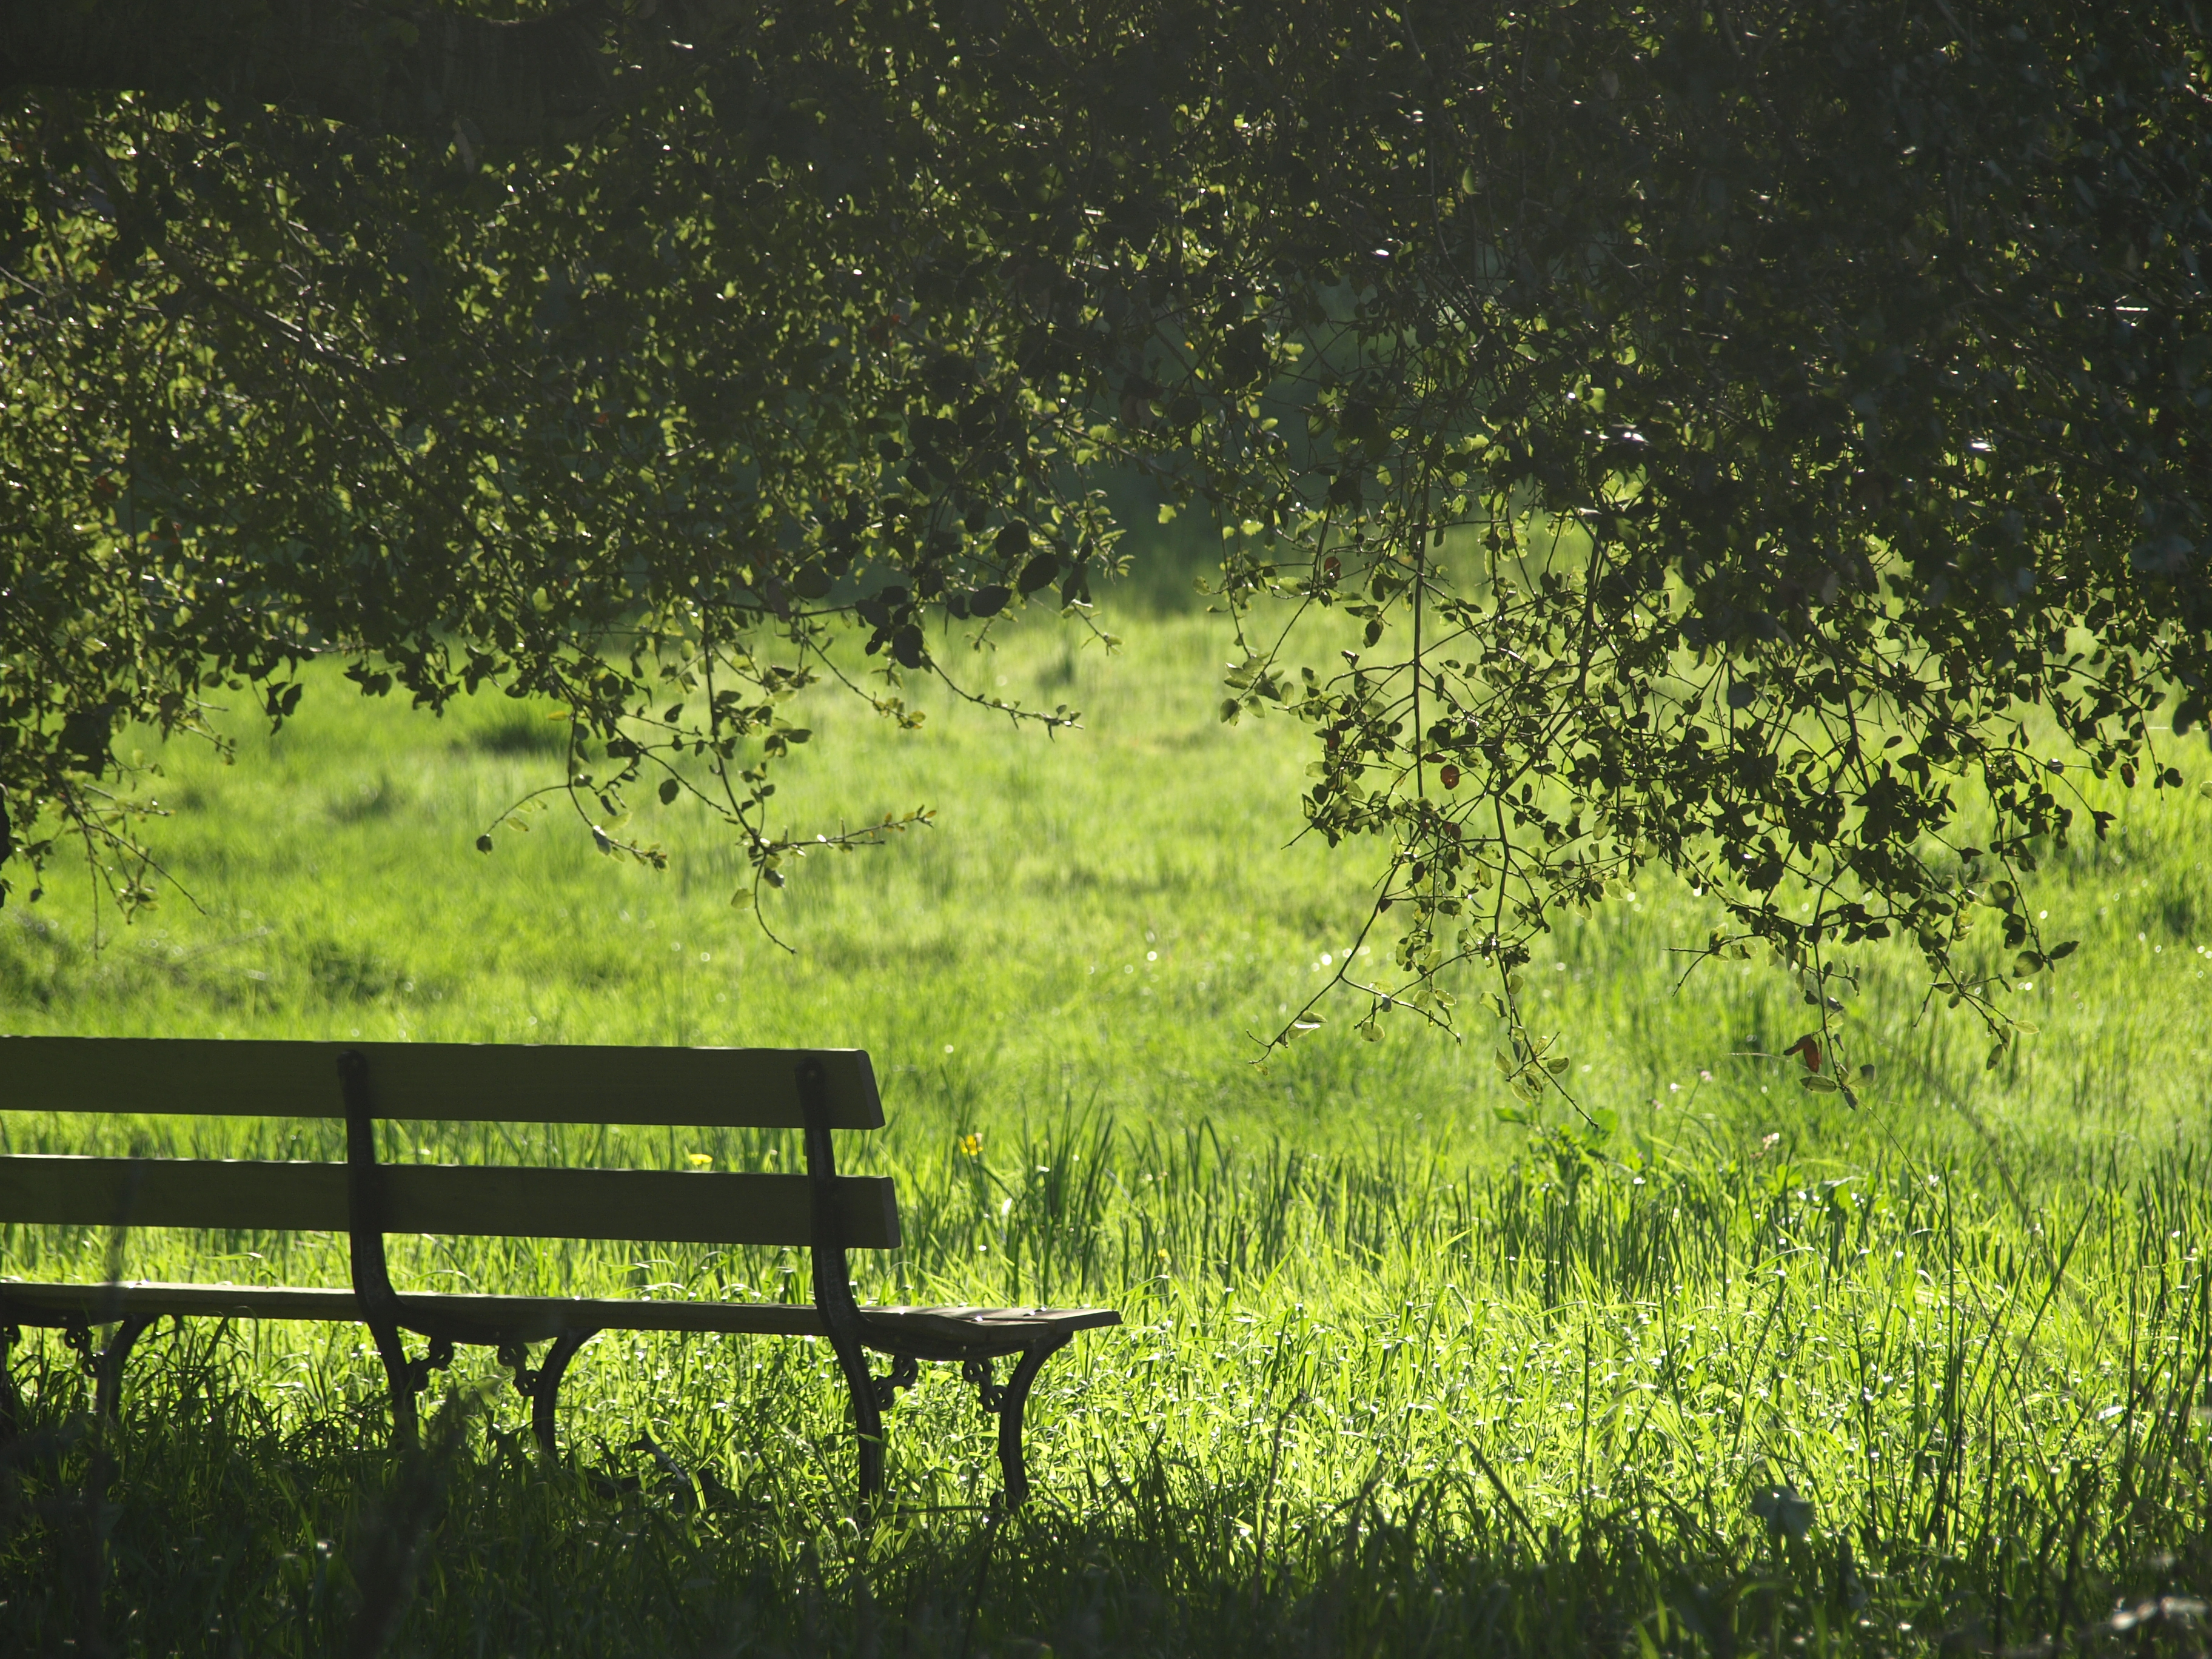 Free Landscape Wallpaper Hd Grass Park Bench Bench And Tree Hd Photo By Olesya